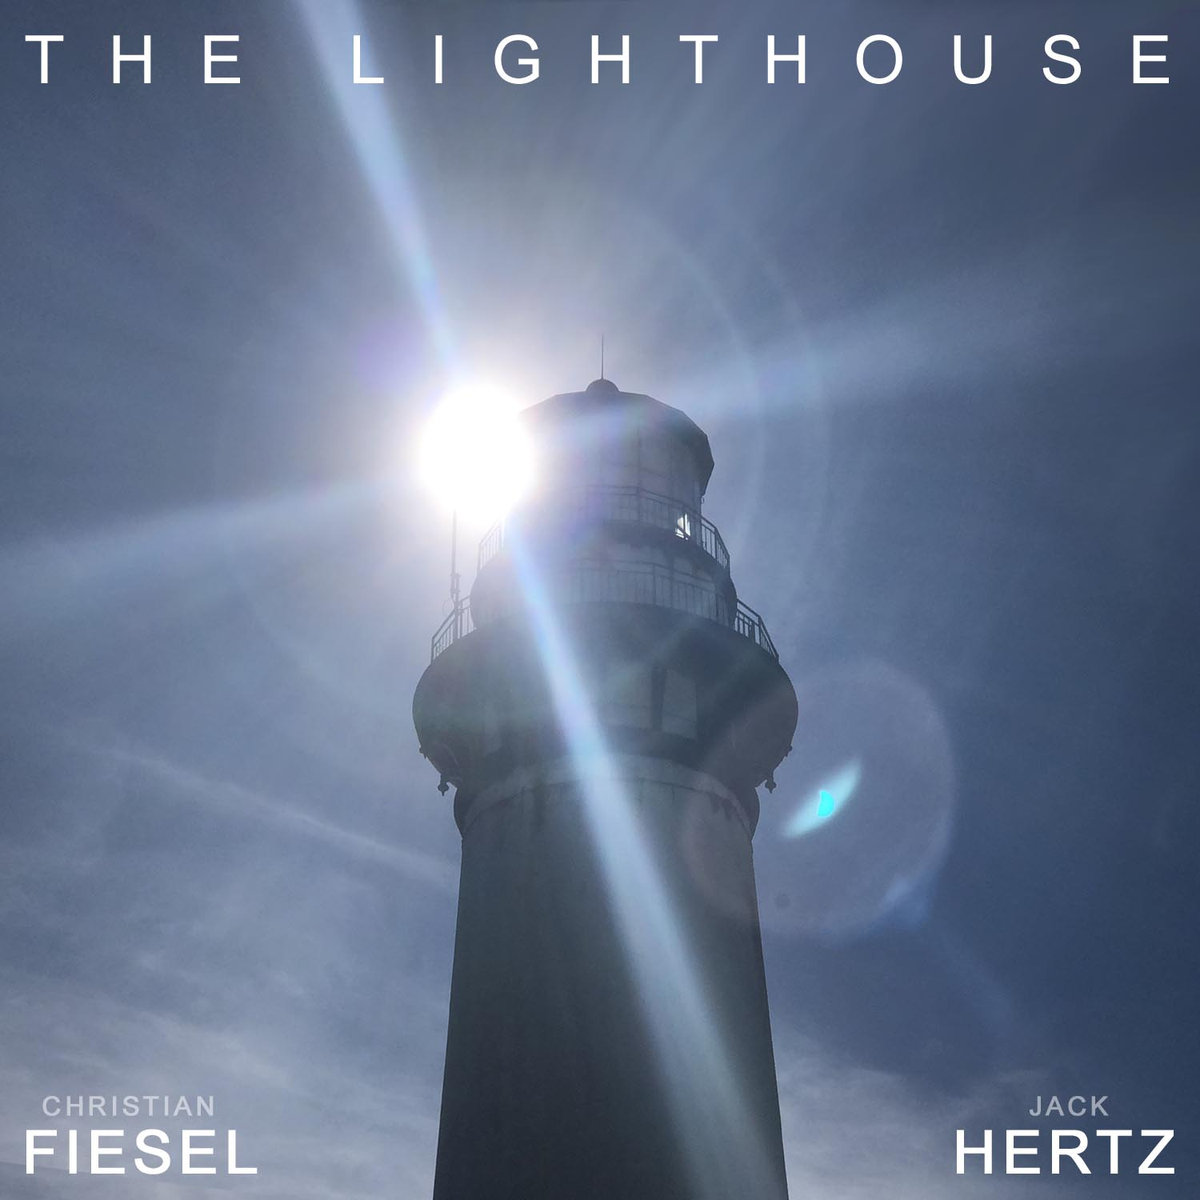 The Lighthouse by Fiesel & Hertz